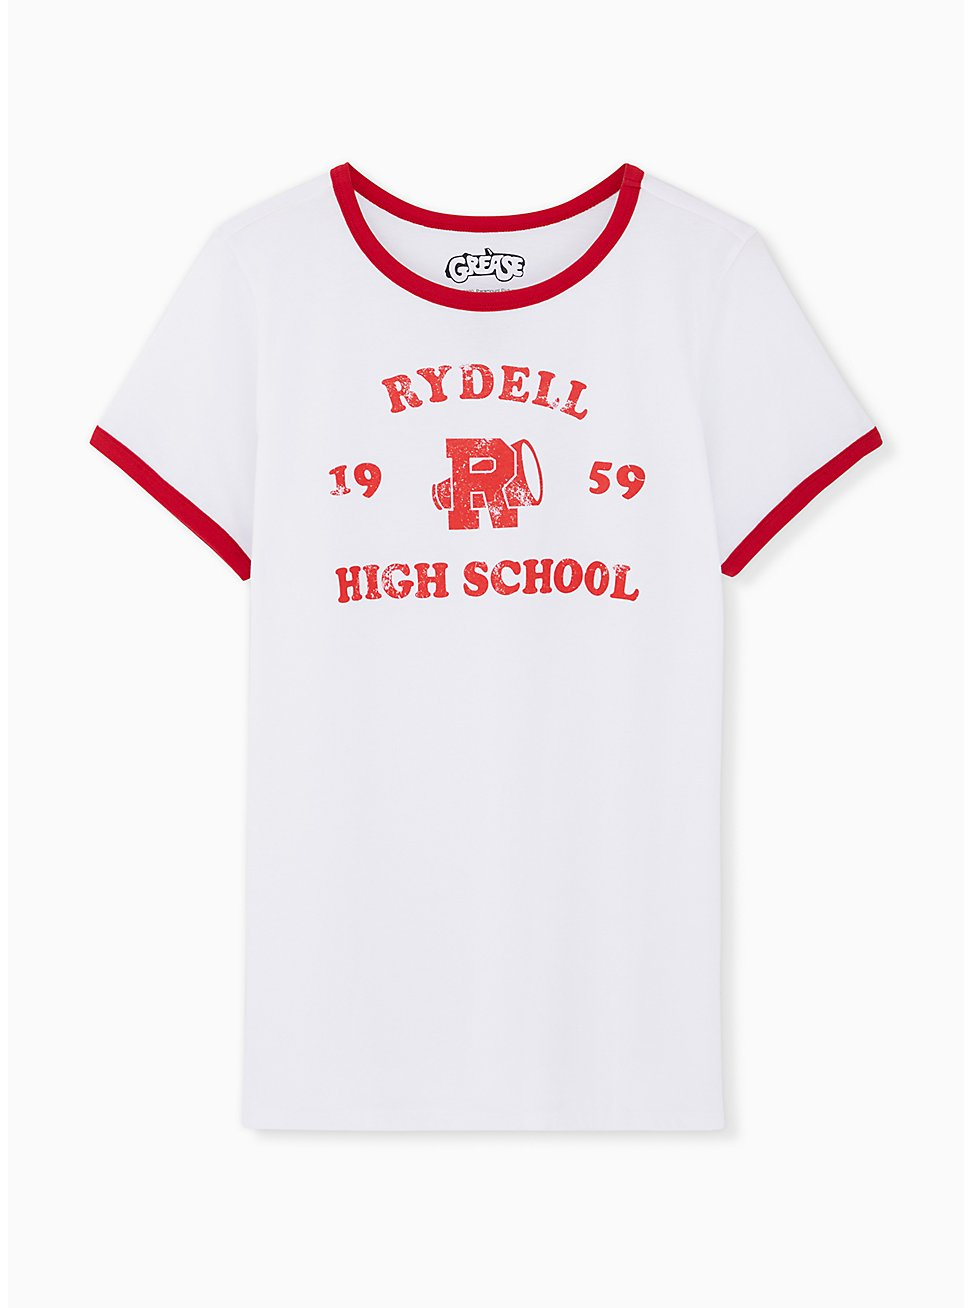 Grease Rydell High Classic Fit Ringer Tee - White, BRIGHT WHITE, hi-res